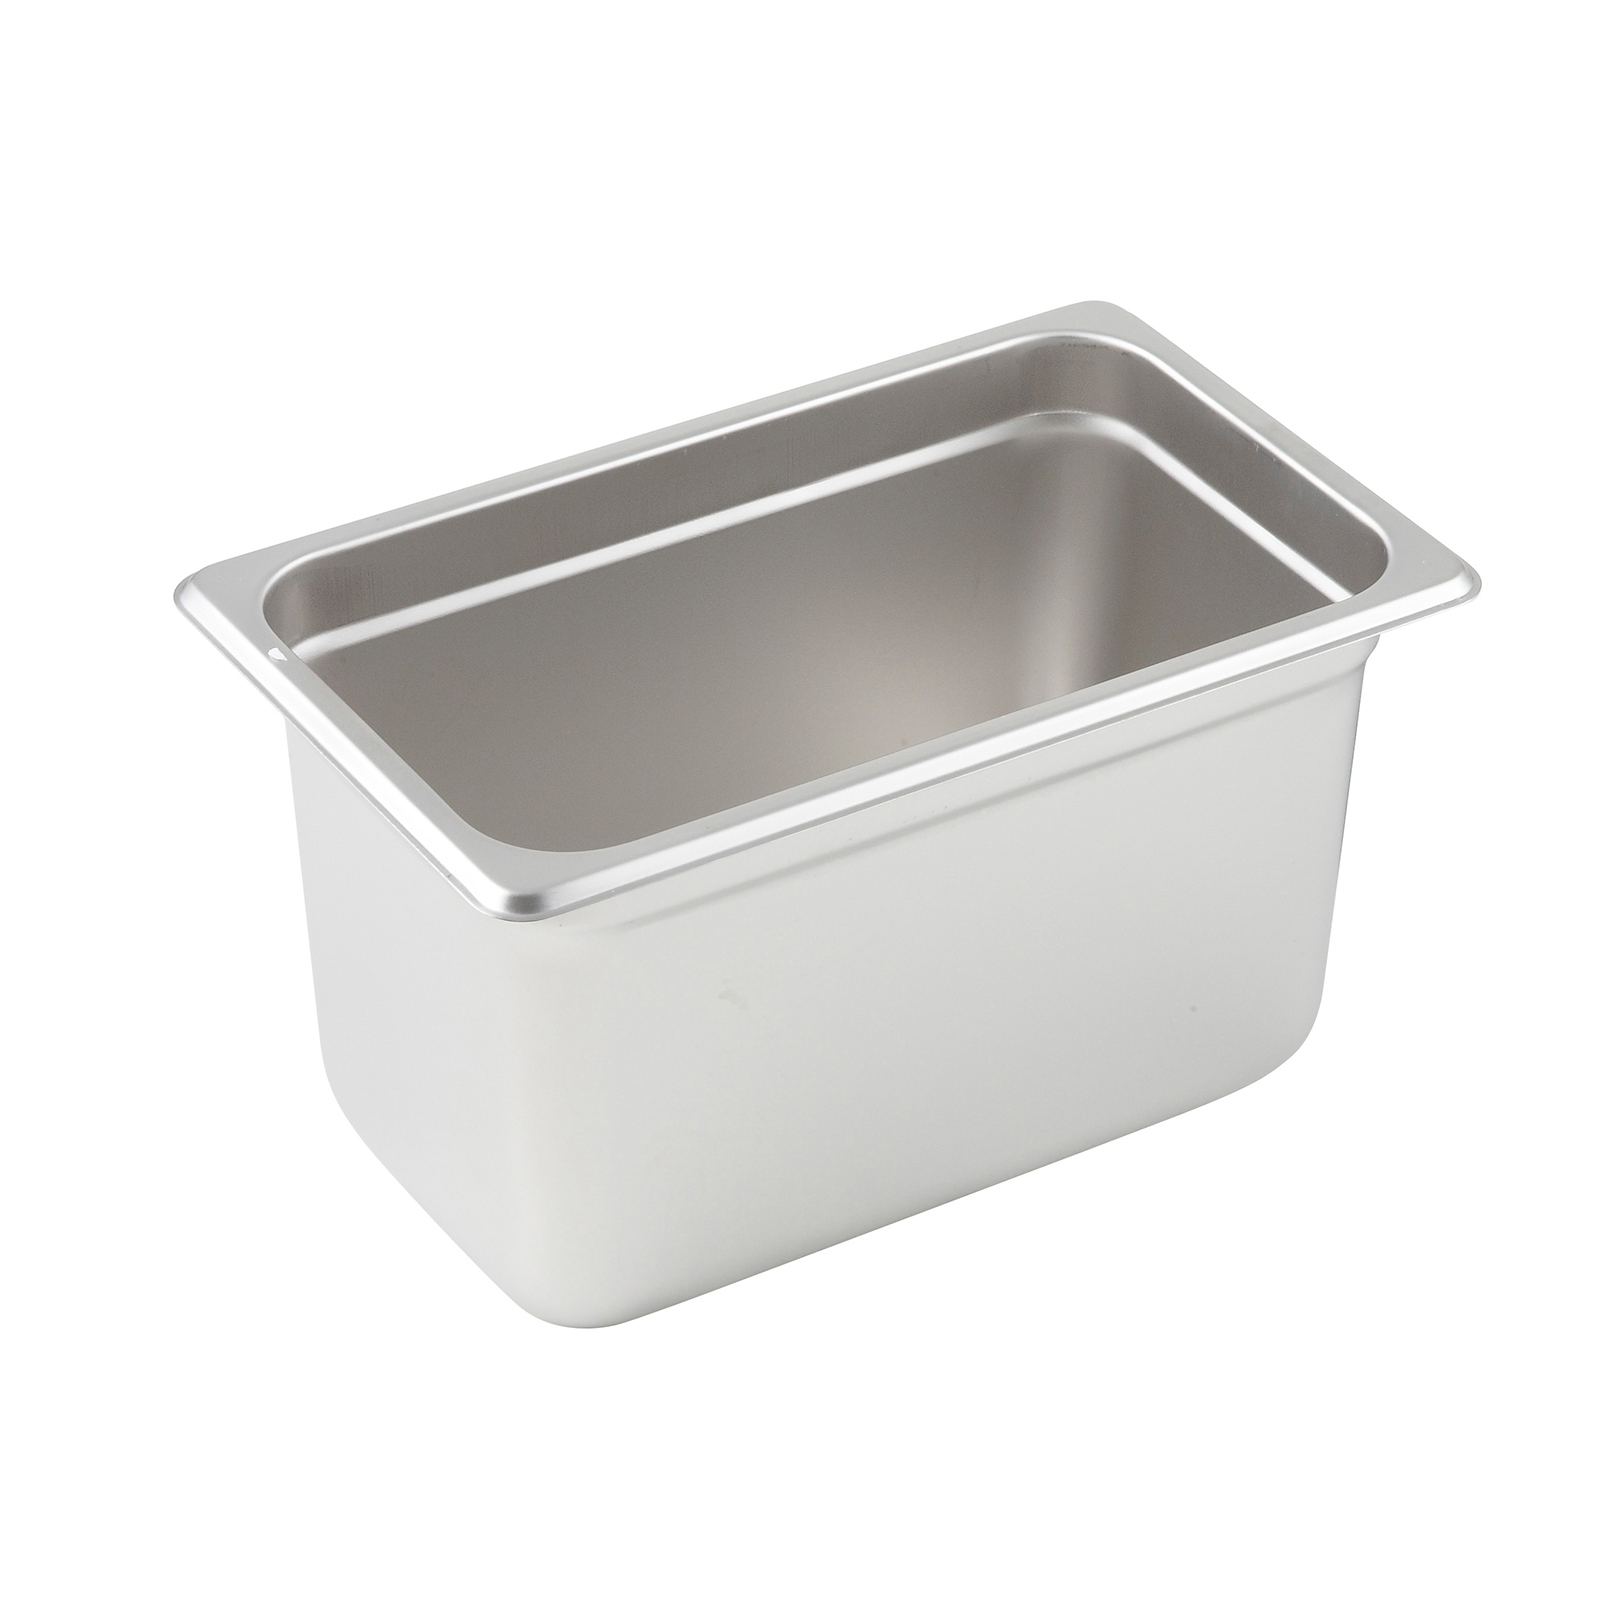 Winco SPJP-406 steam table pan, stainless steel